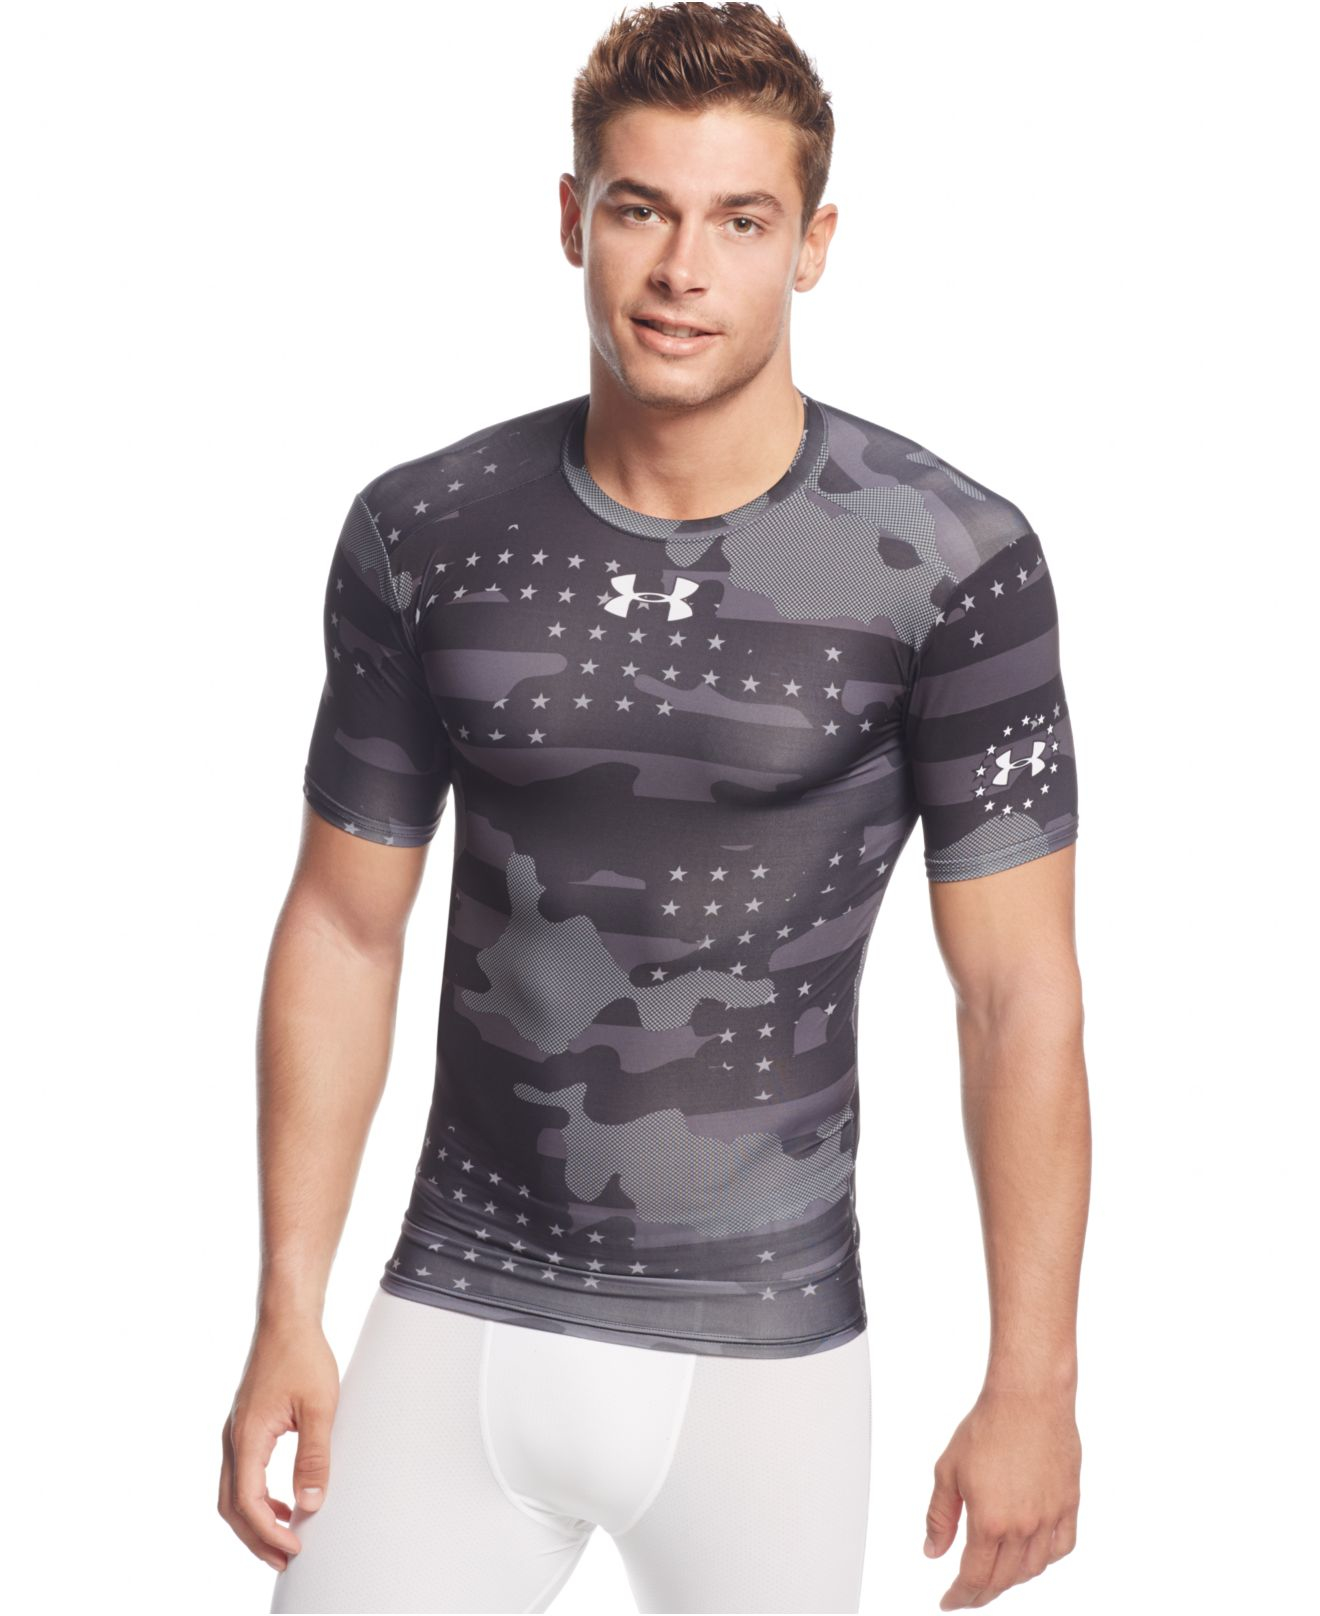 Under armour camo 2 0 heatgear compression t shirt in for Under armour heatgear white shirt